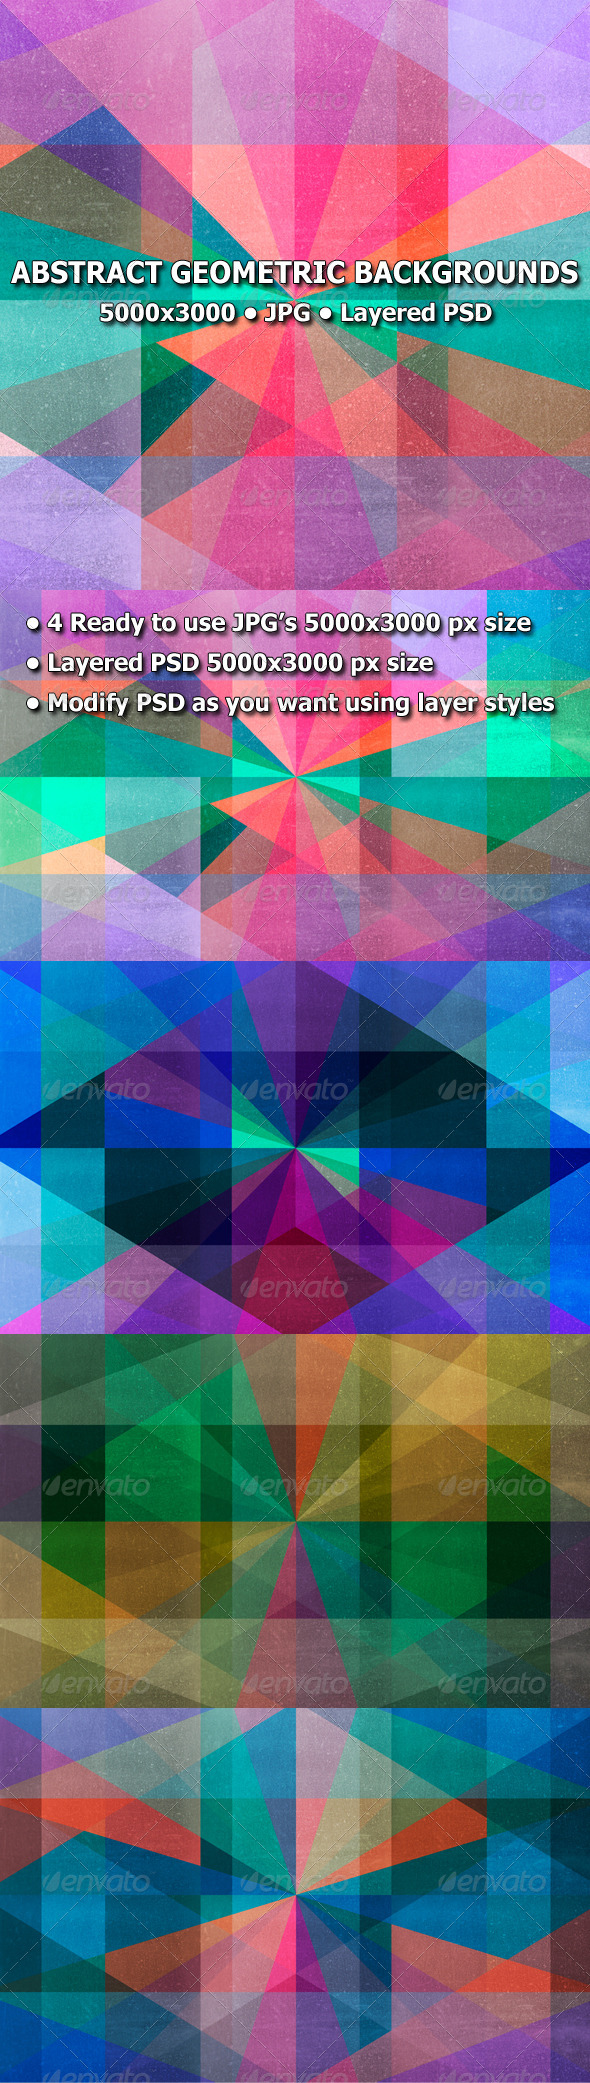 GraphicRiver Abstract Geometric Backgrounds 7668312